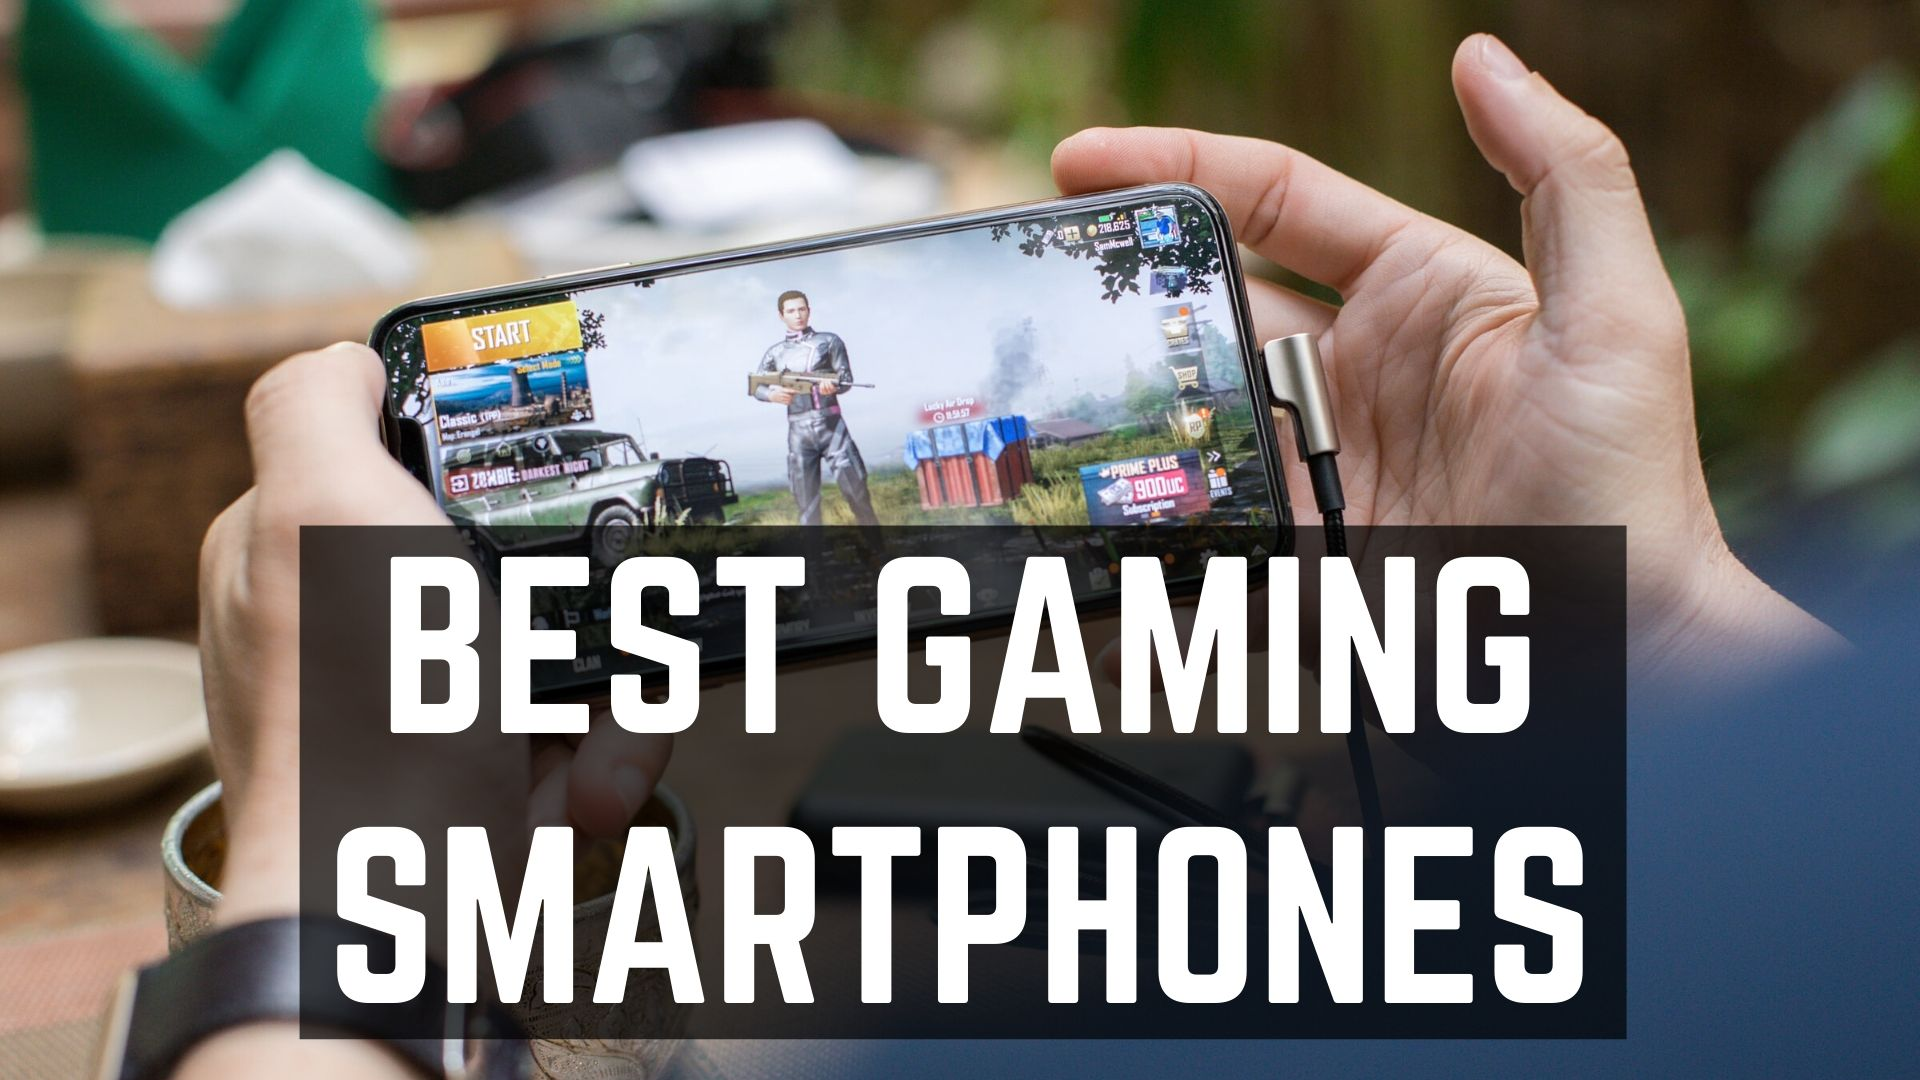 Best Gaming Smartphones